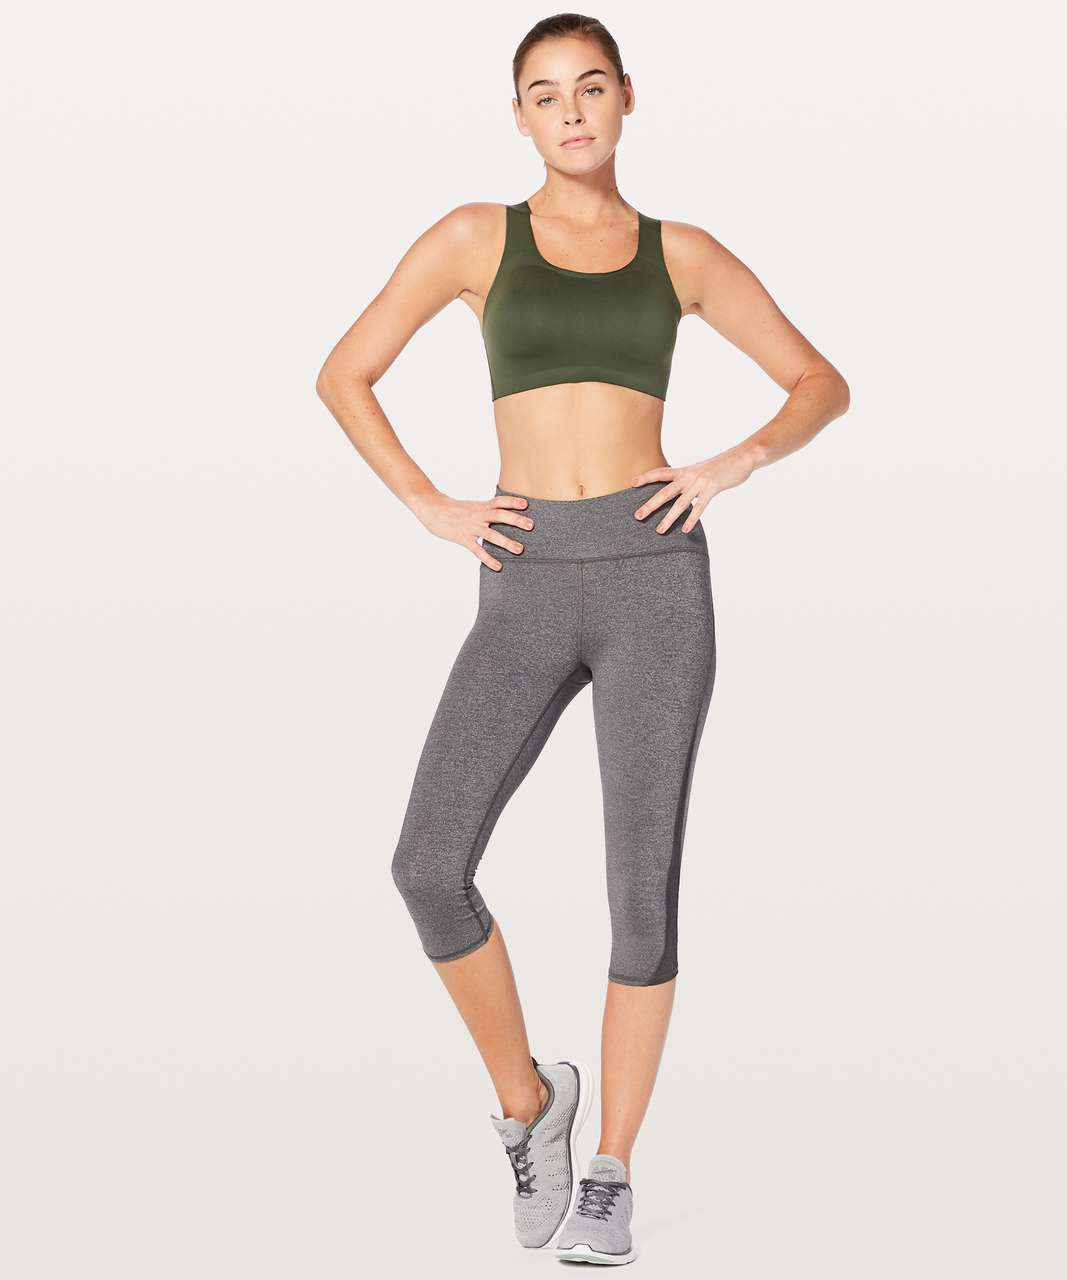 Lululemon Enlite Bra - Pesto